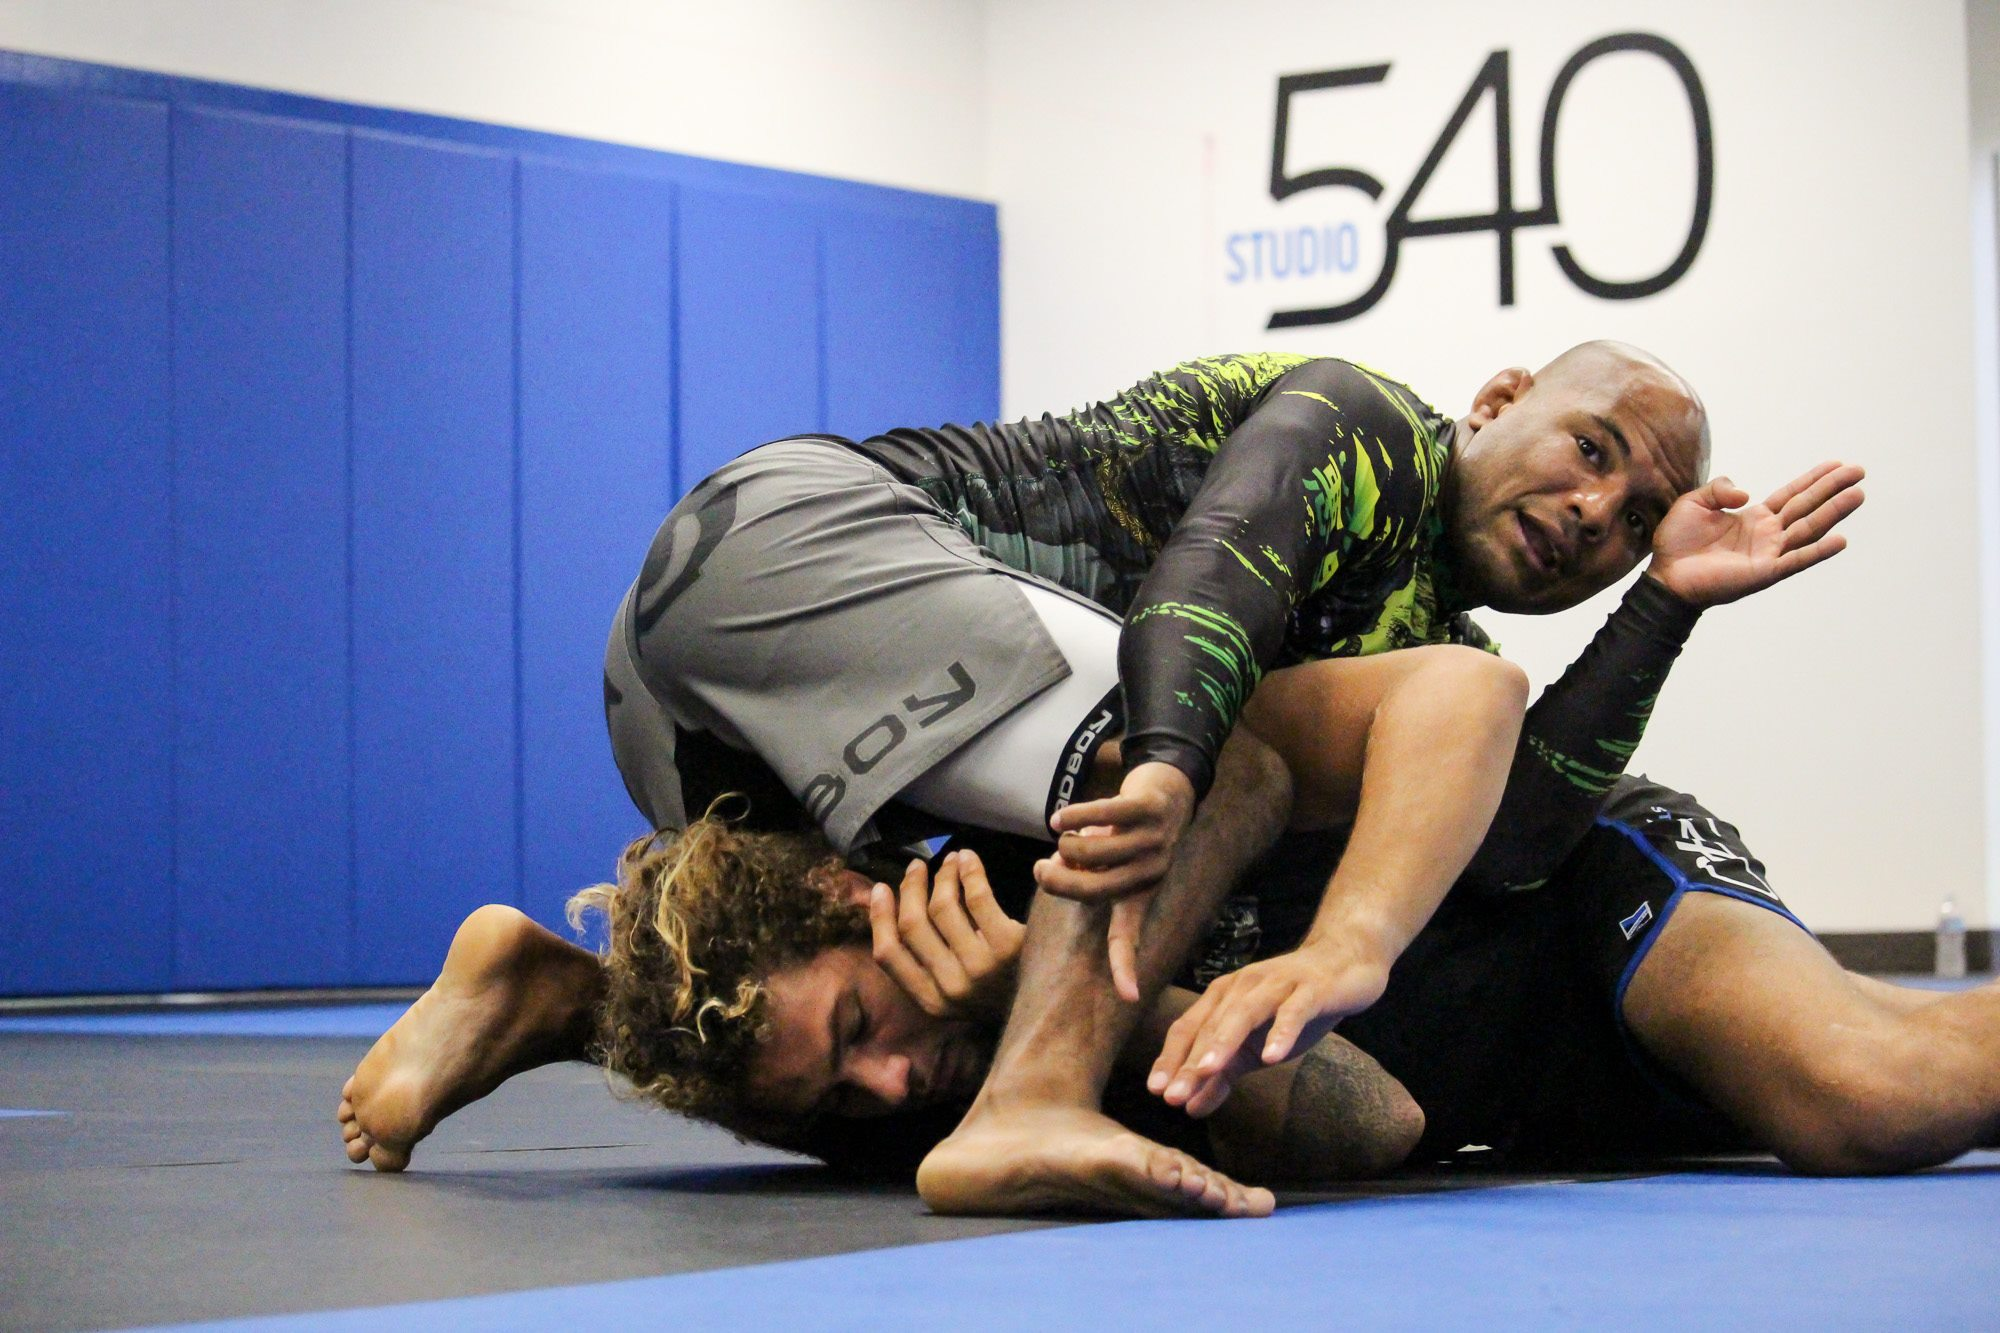 8 Tips for Staying Injury-Free in Jiu-Jitsu